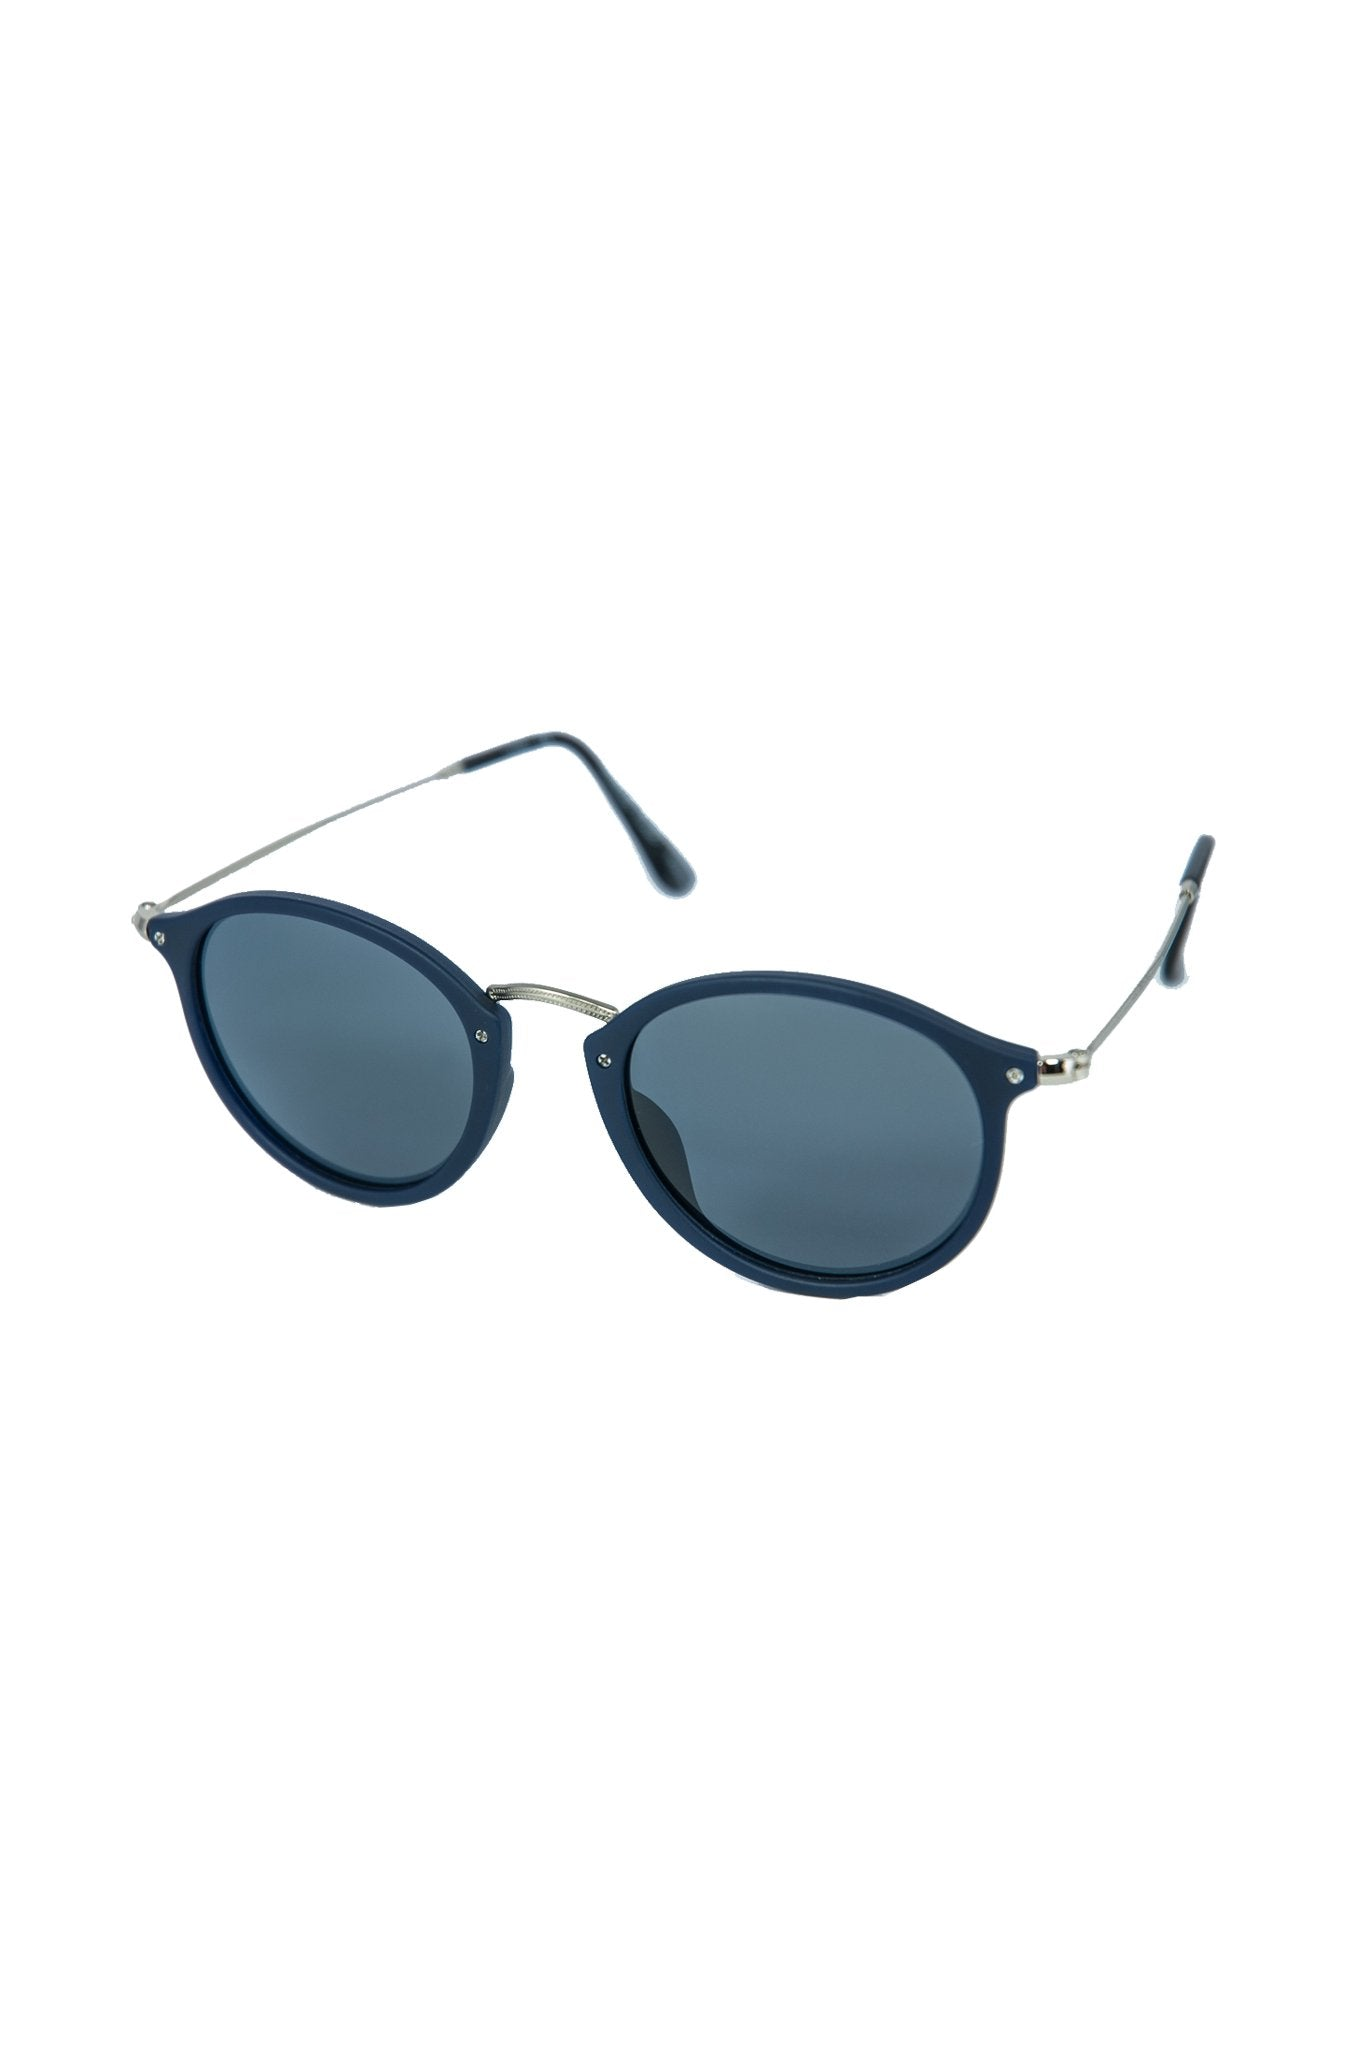 Milano Blue Sunglasses - Komodo Fashion